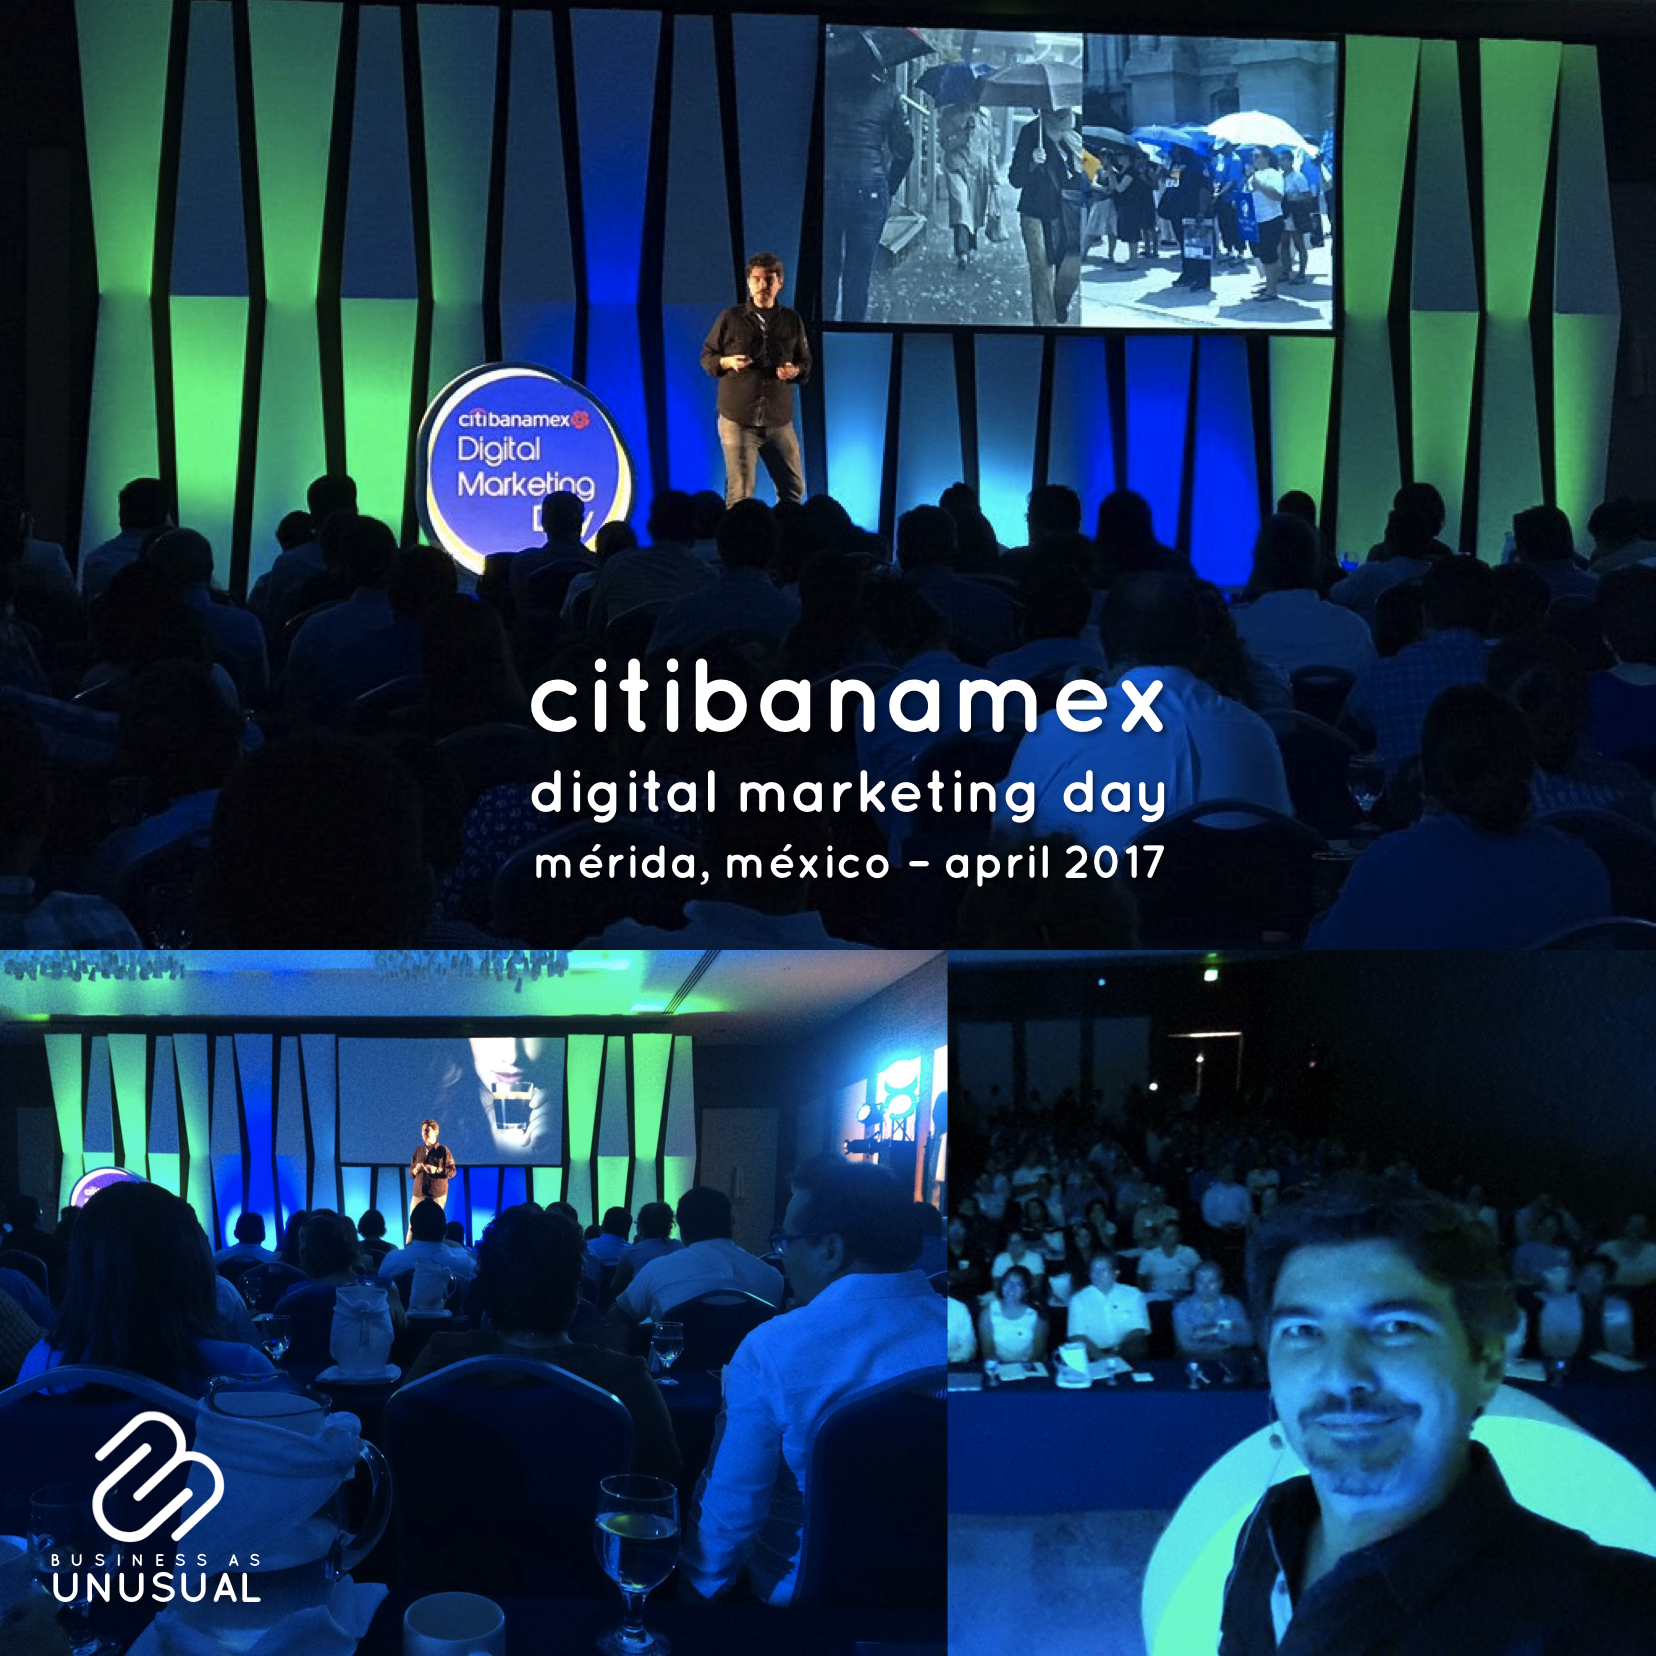 Citibanamex - Digital Marketing Day - Mérida